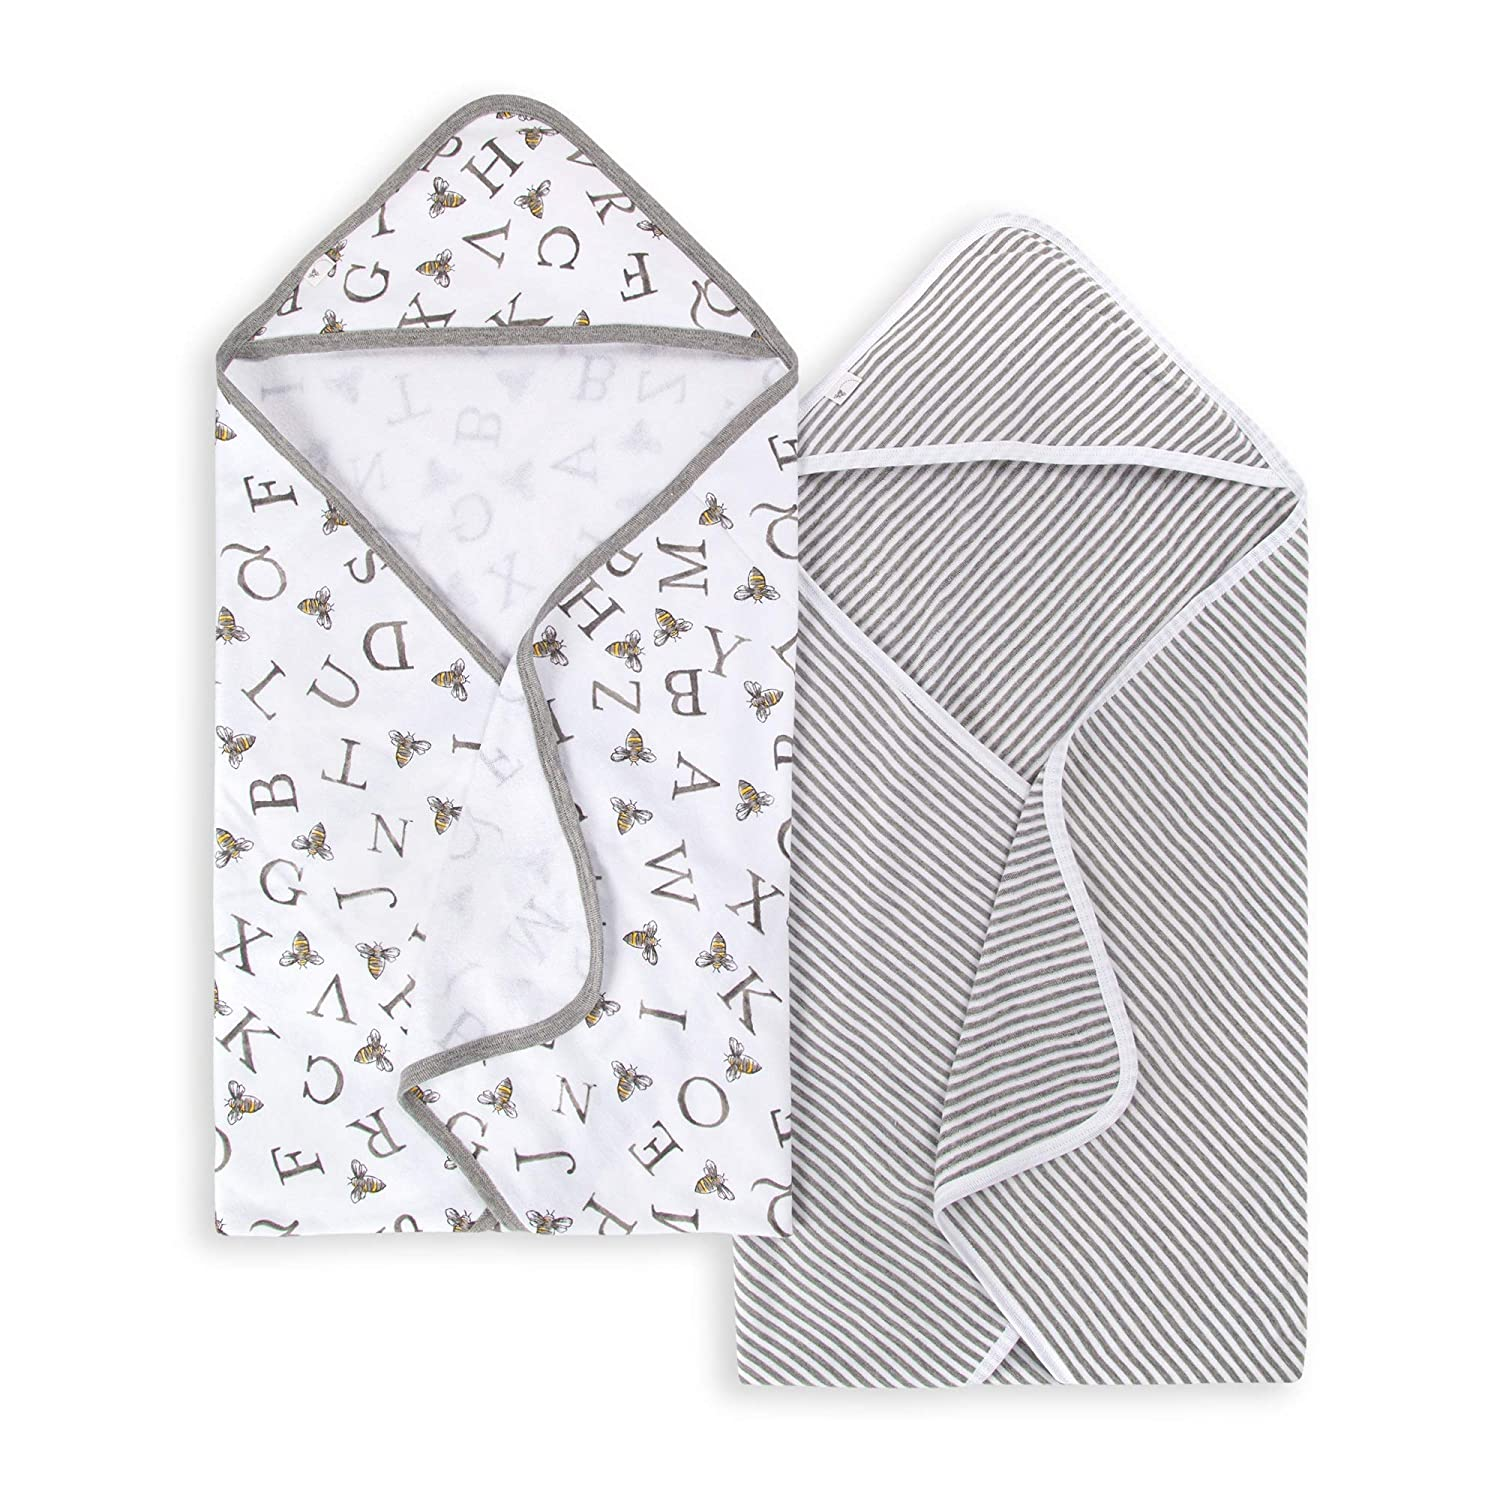 Burt's Bees Baby - Hooded Towels, Absorbent Knit Terry, Super Soft Single-Ply, 100% Organic Cotton 2 Pack), A-Bee-C, 2 Pack